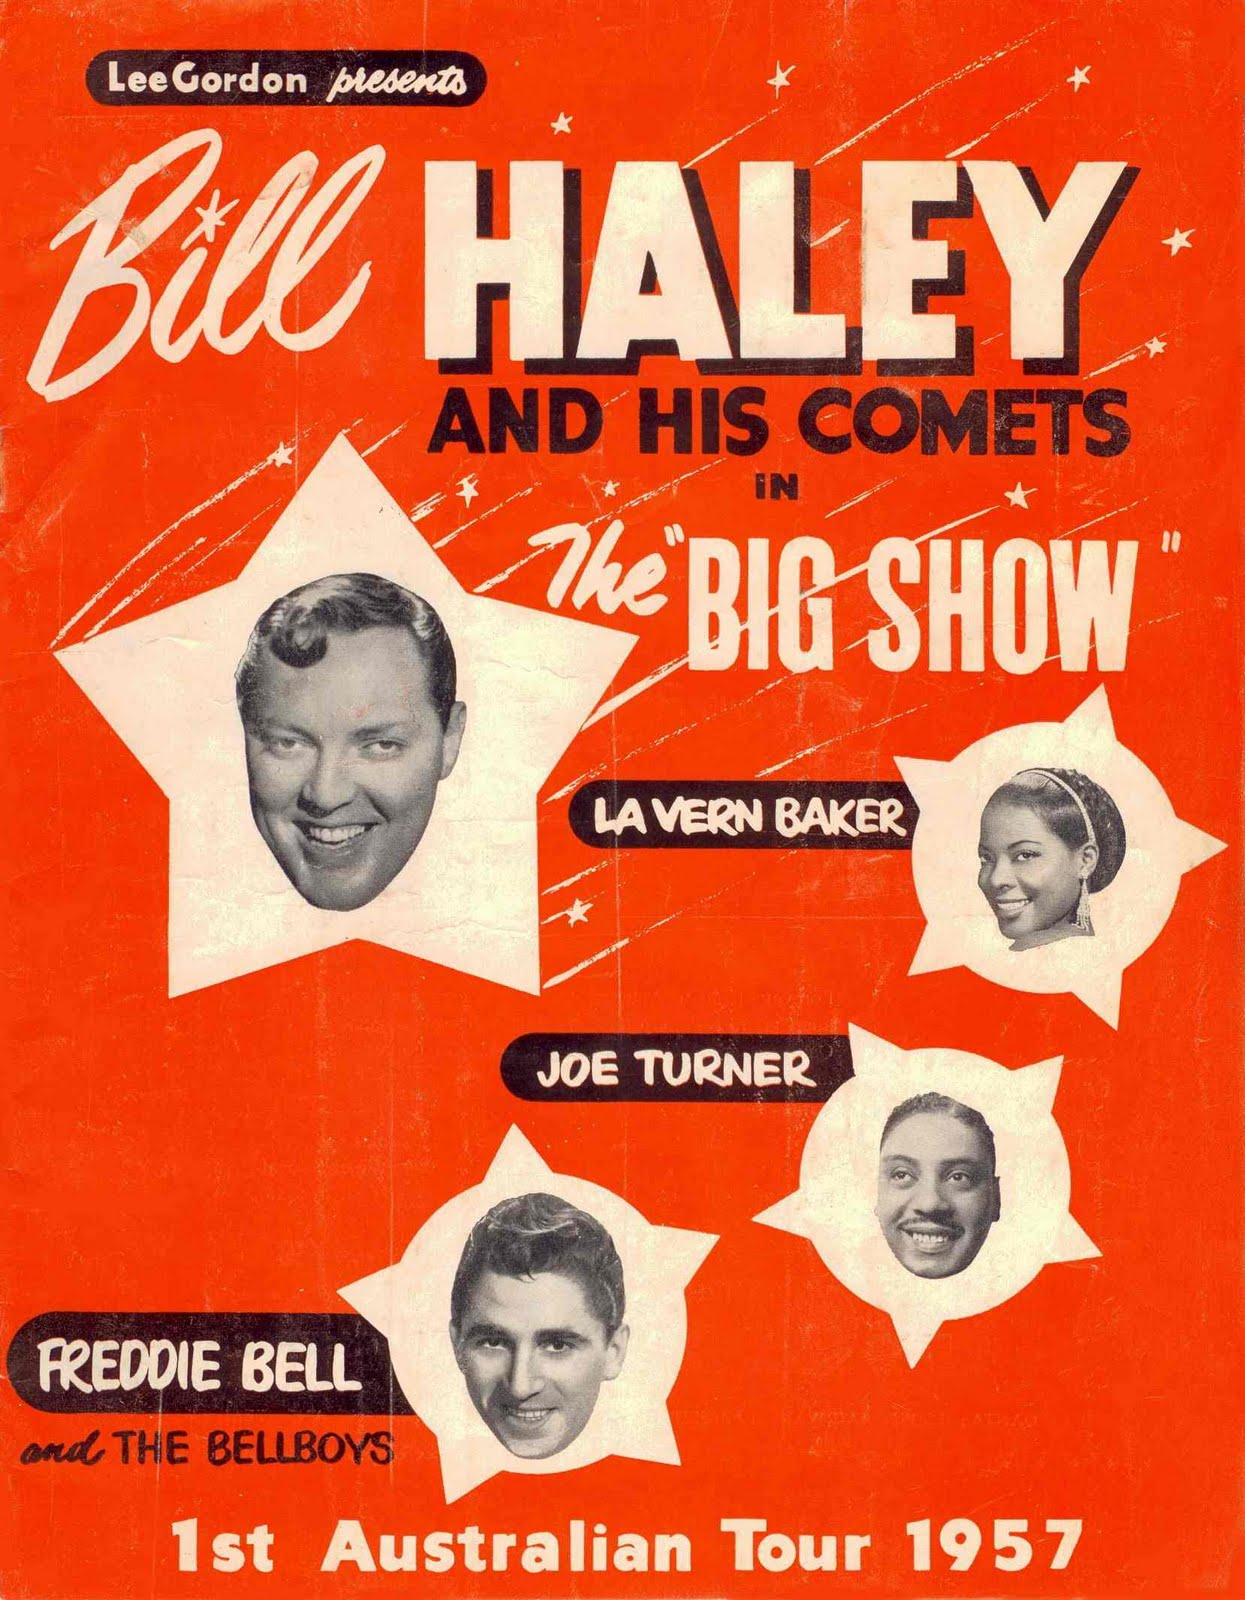 Promotional poster for Bill Haley;'s first Australian tour in 1957.